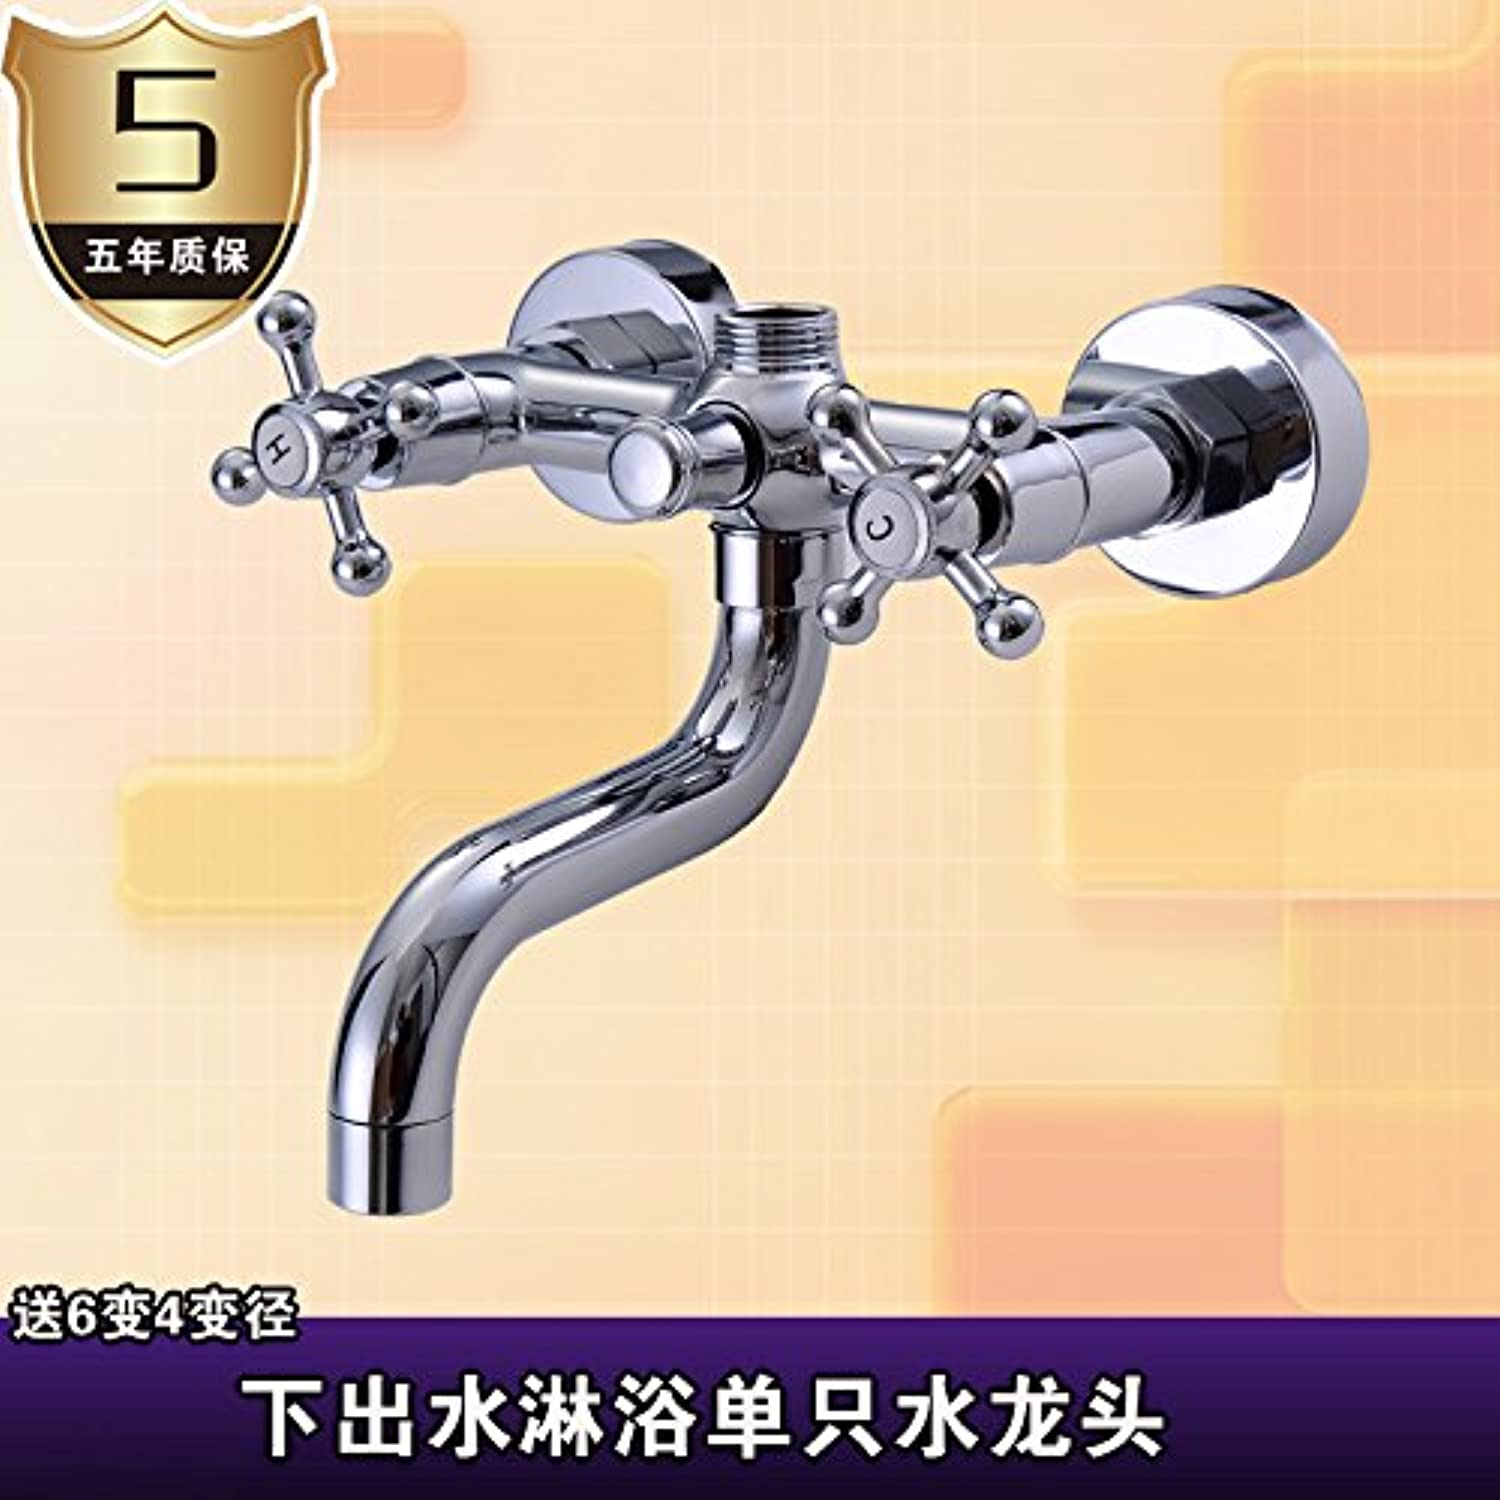 SunSui All copper double handle double control bathtub faucet, double handle cold and hot water faucet, redary double handle into wall type hot and cold shower faucet,The old style pull up hose is connected with the shower hose